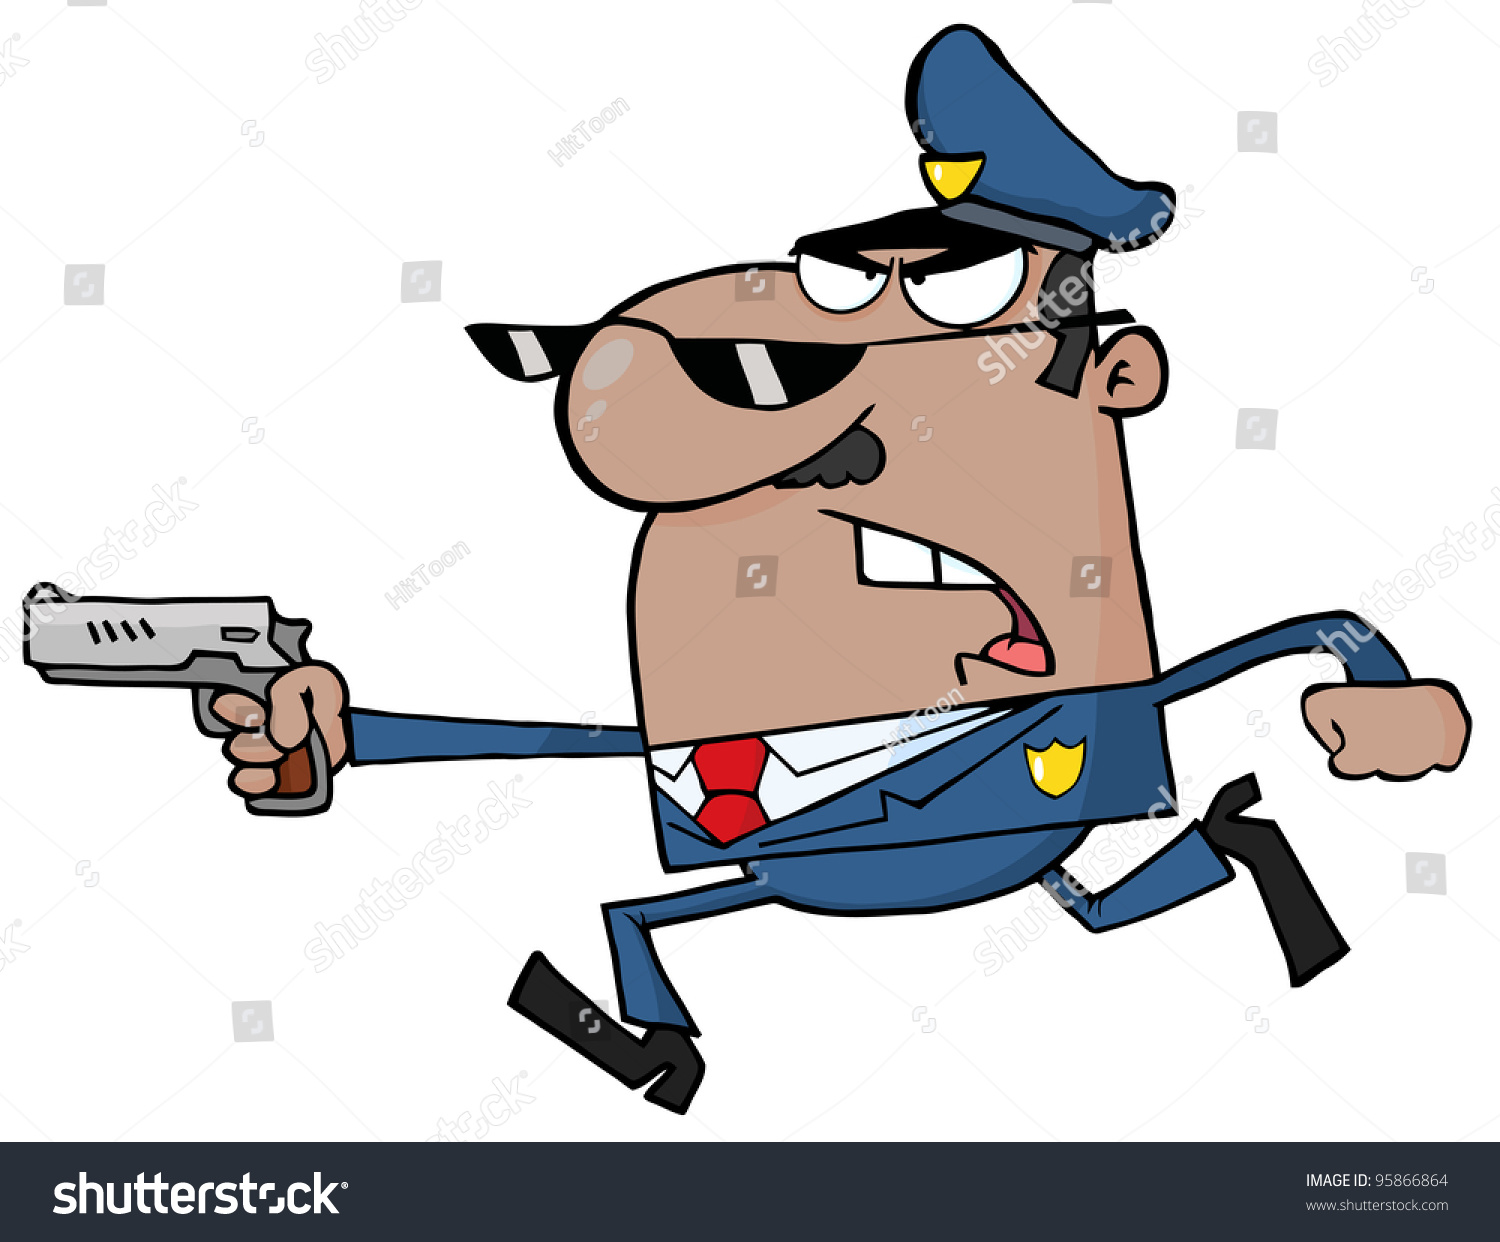 African American Police Officer - 274.0KB